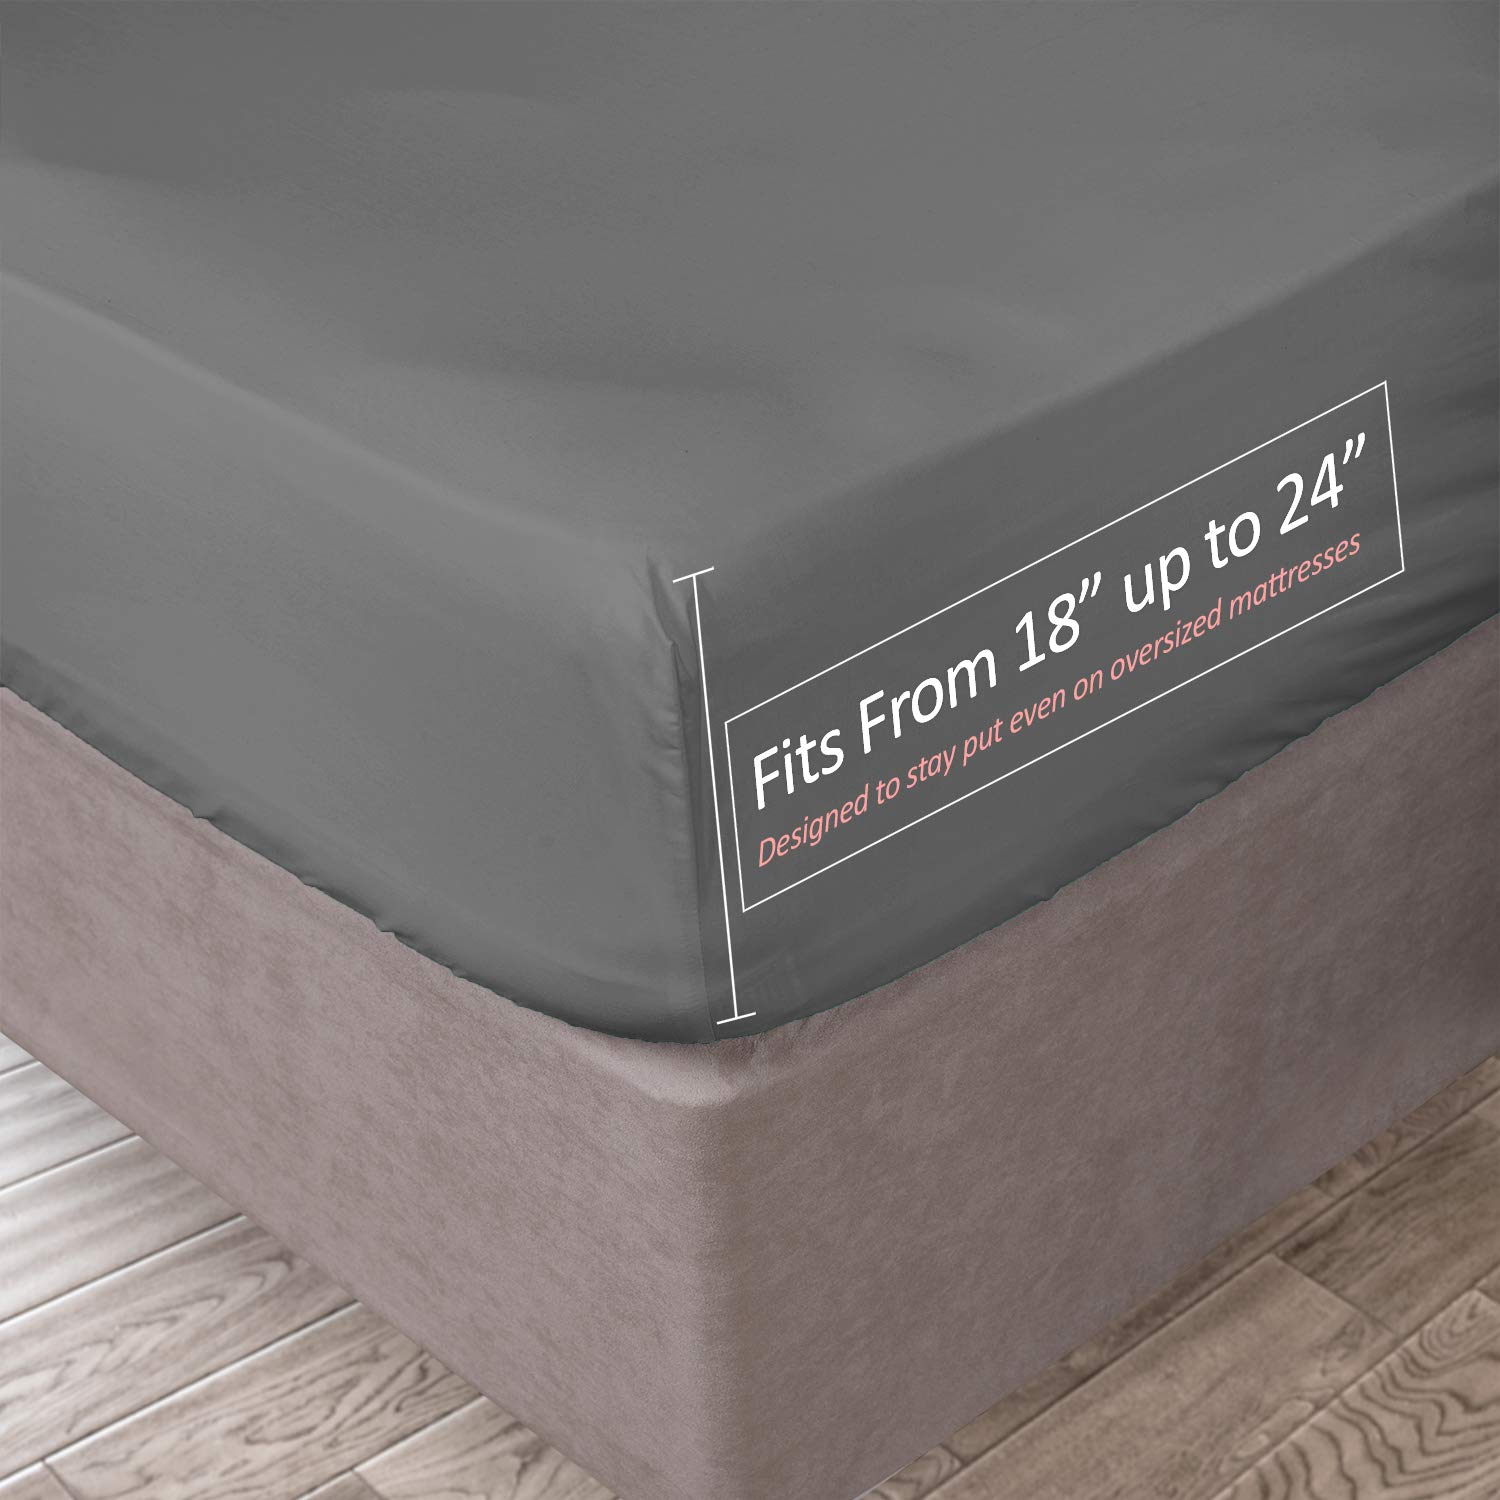 Clara Clark 21 Inch Deep Pocket Fitted Sheet 100% Soft Double Brushed Microfiber, Twin XL, Charcoal Gray